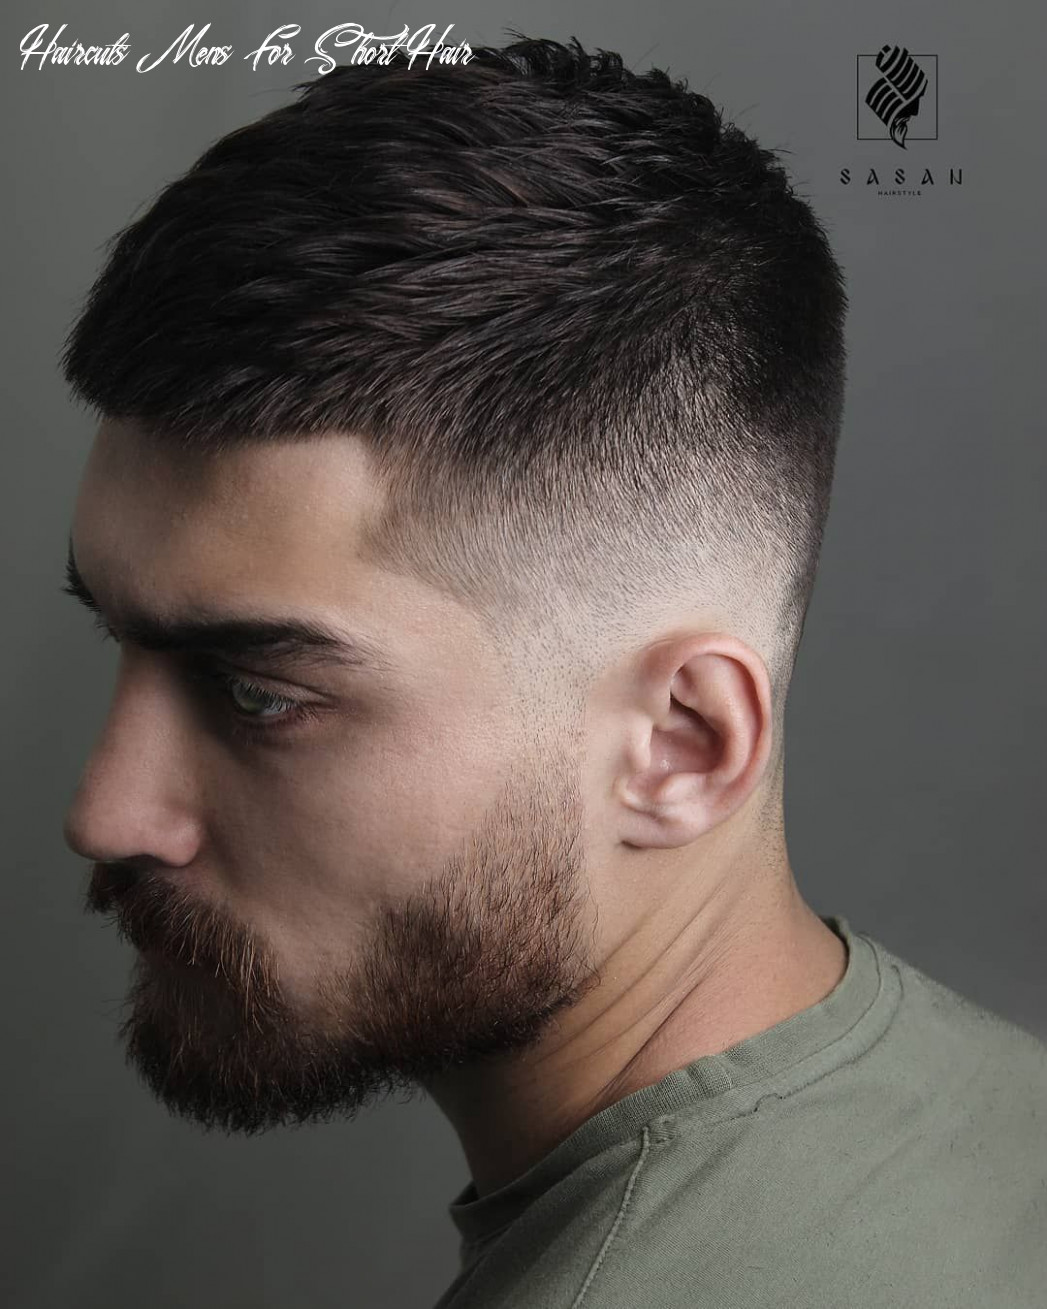 12 cool haircuts for men (1212 styles) | young men haircuts, mens